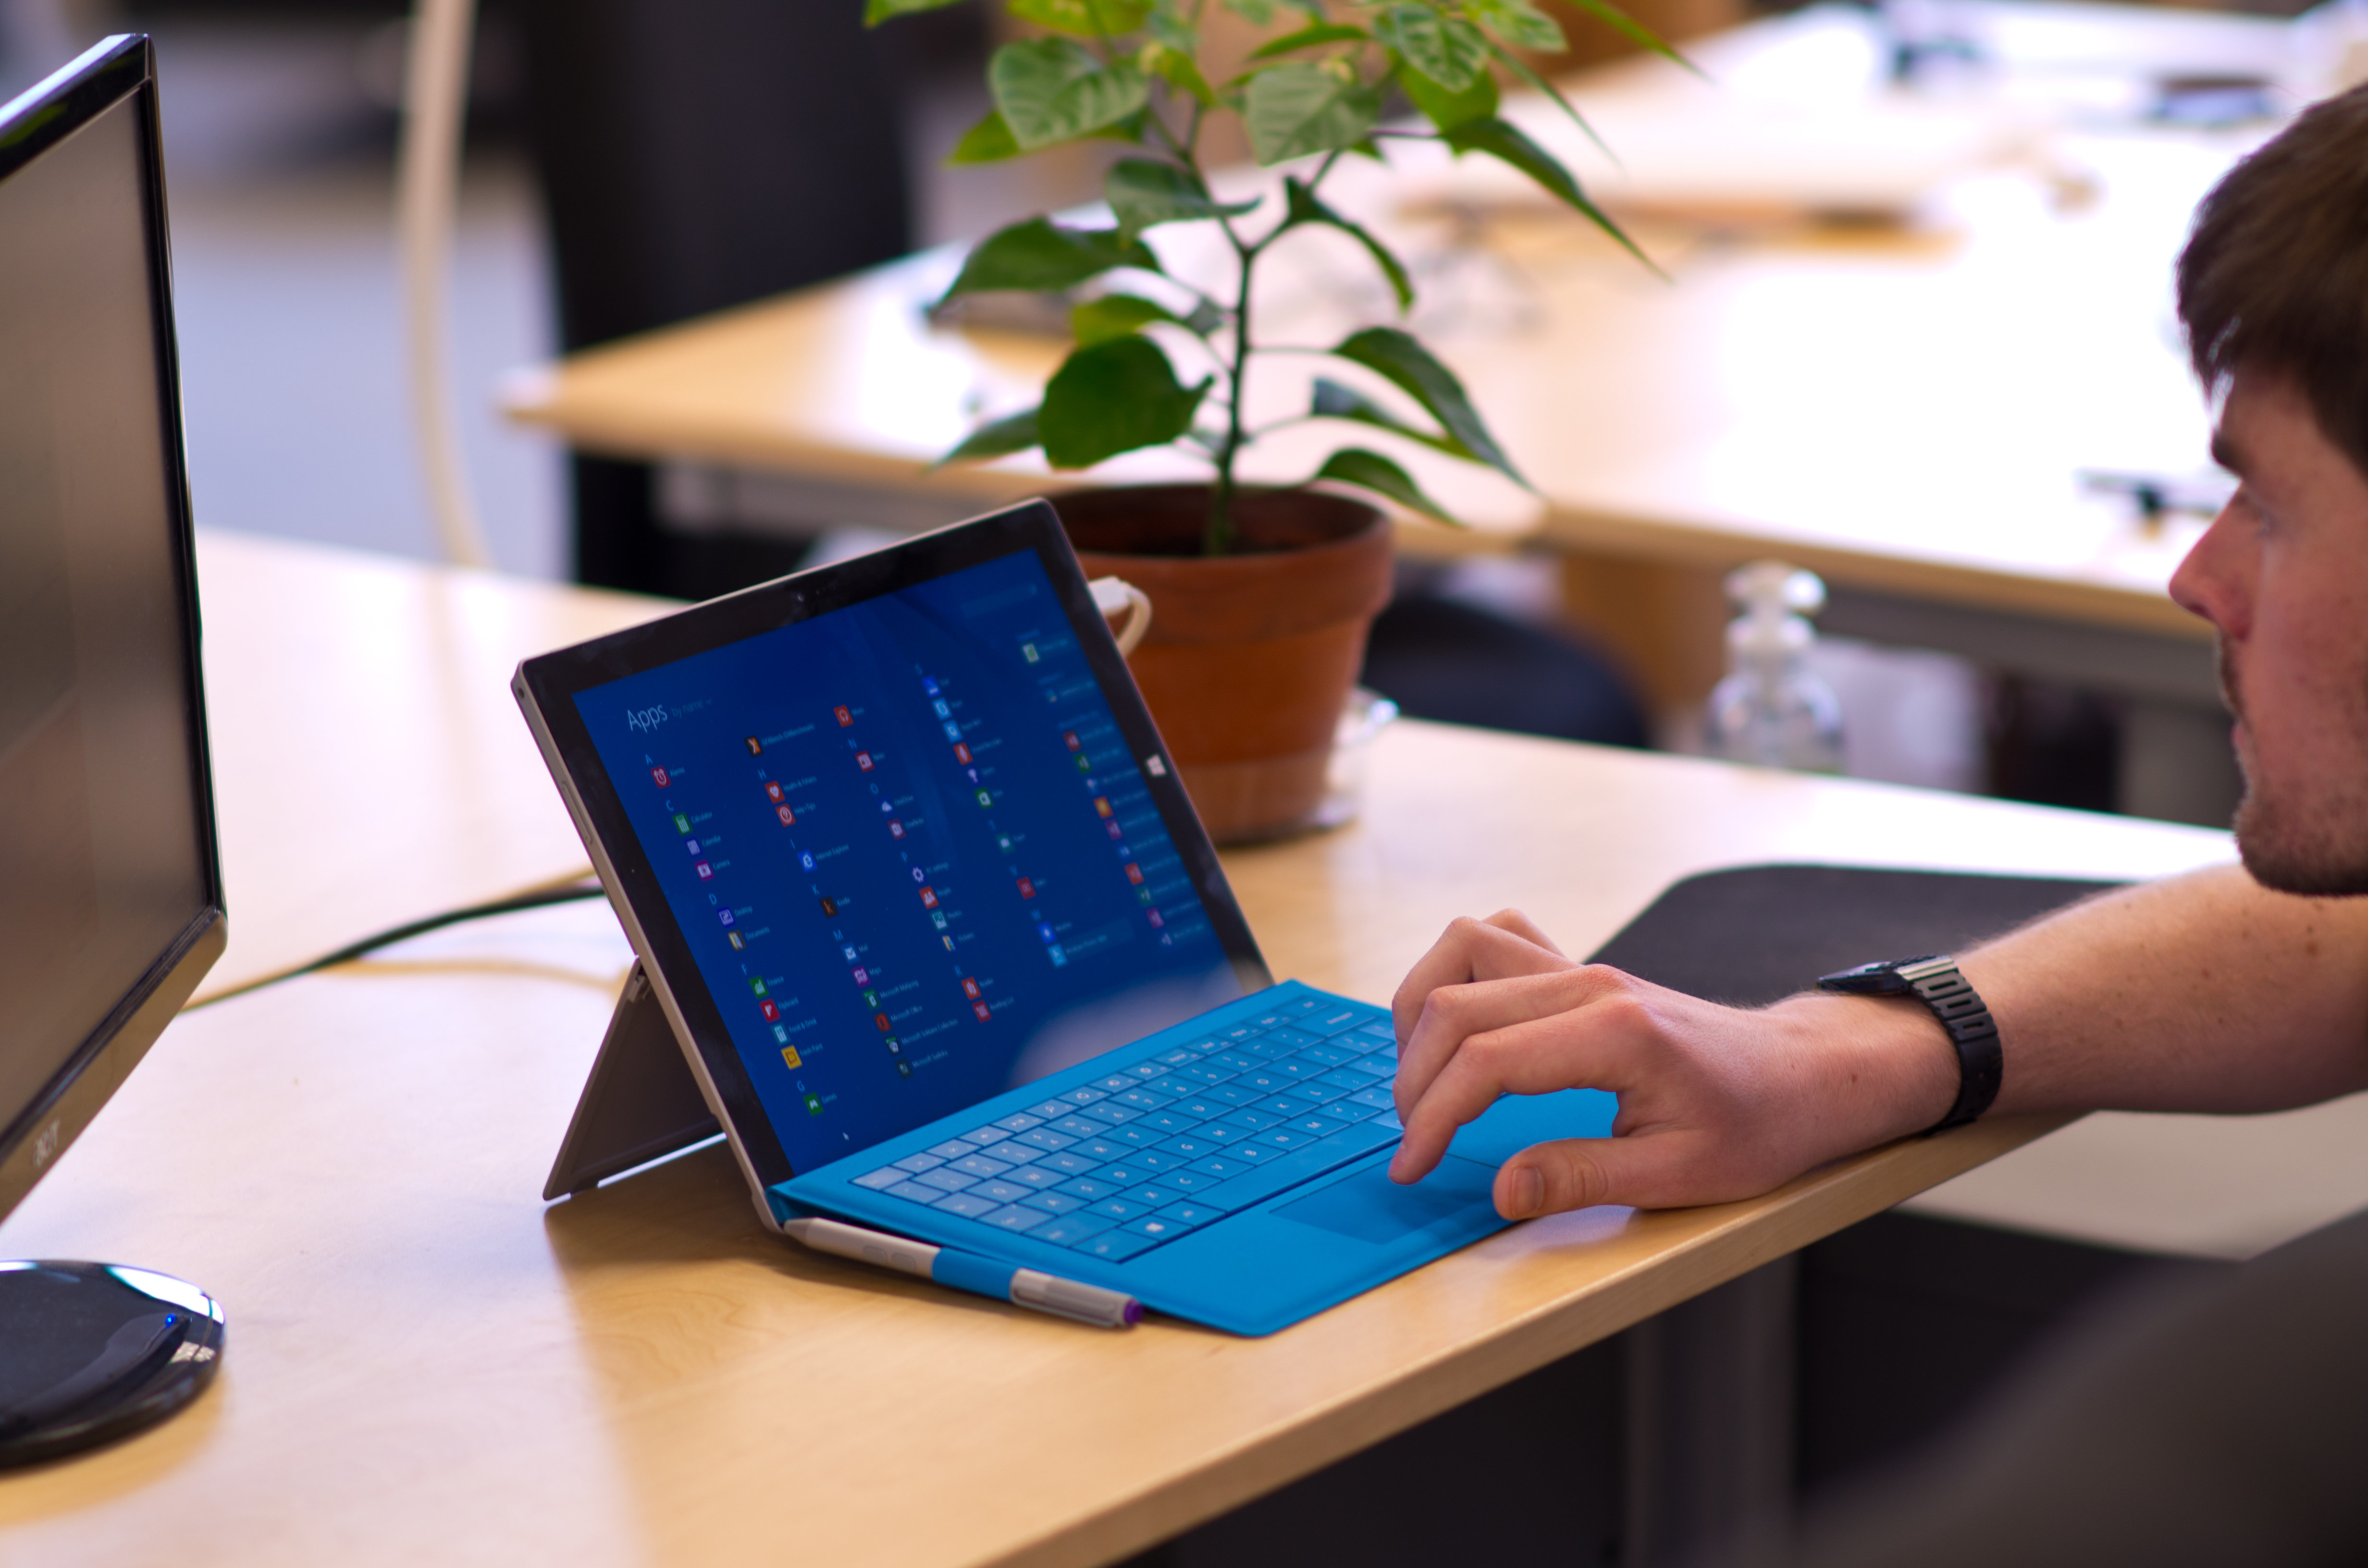 A closer look at the Microsoft Surface Pro 3 in use.